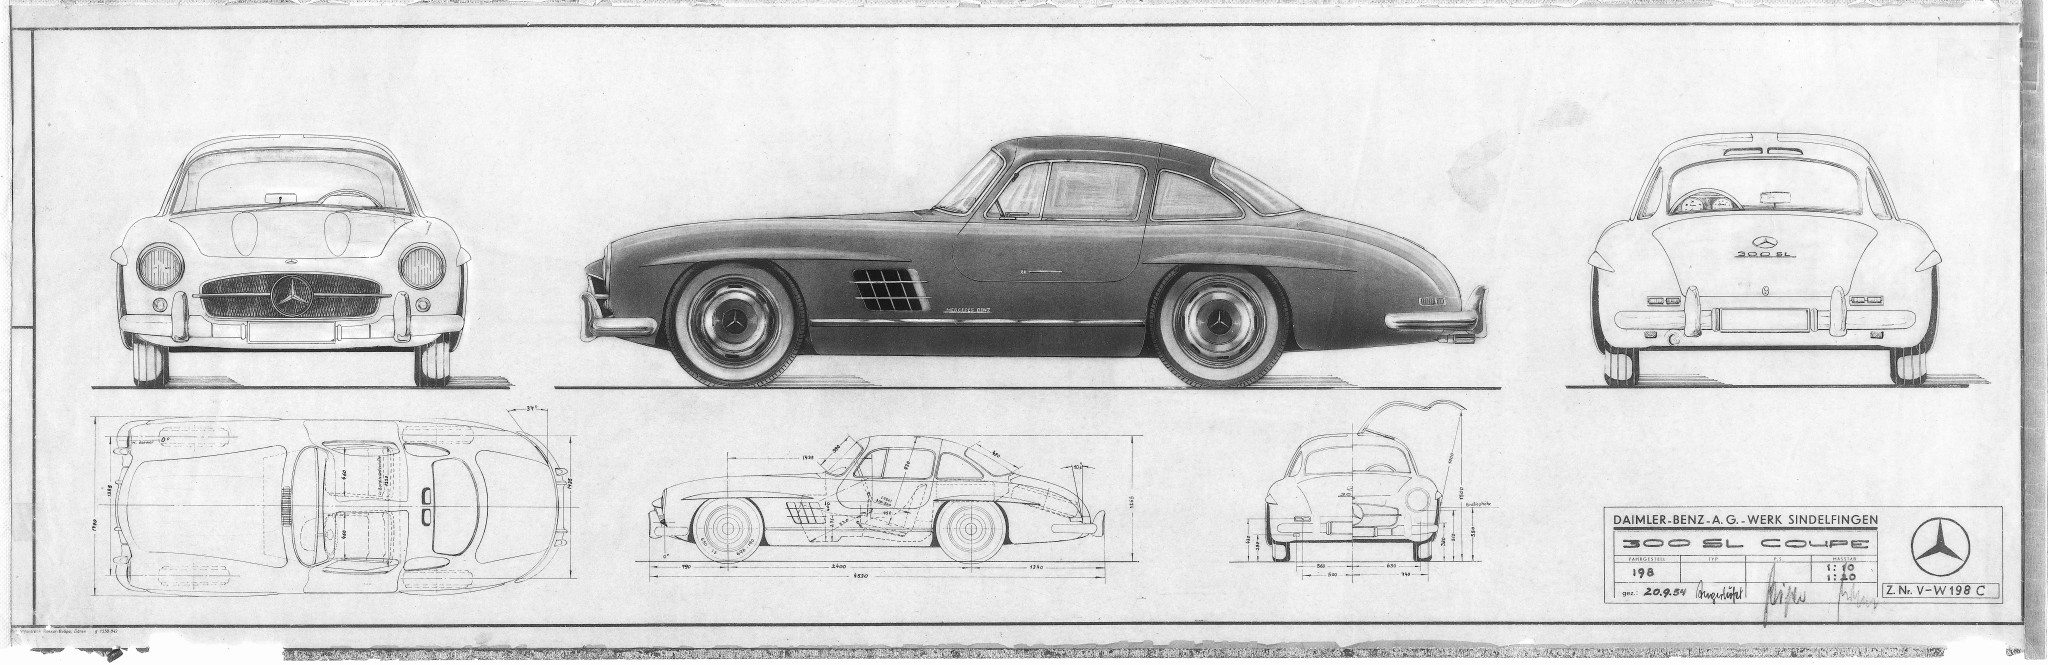 Mercedes-Benz 300SL Blueprints and Design Sketches